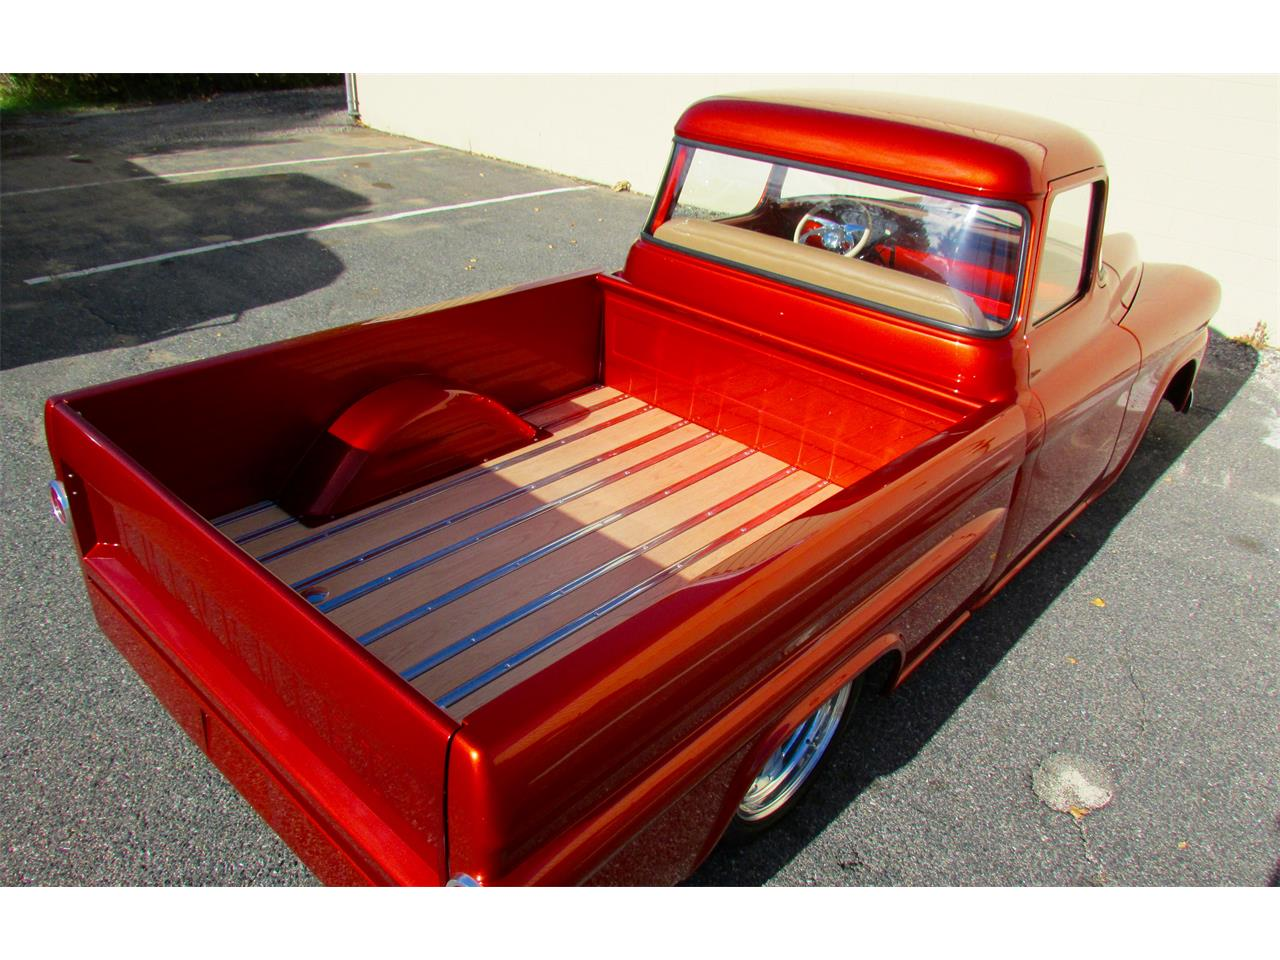 Large Picture of Classic '59 Fleetside Custom Pickup Truck  located in Framingham Massachusetts - $169,000.00 - JPTV